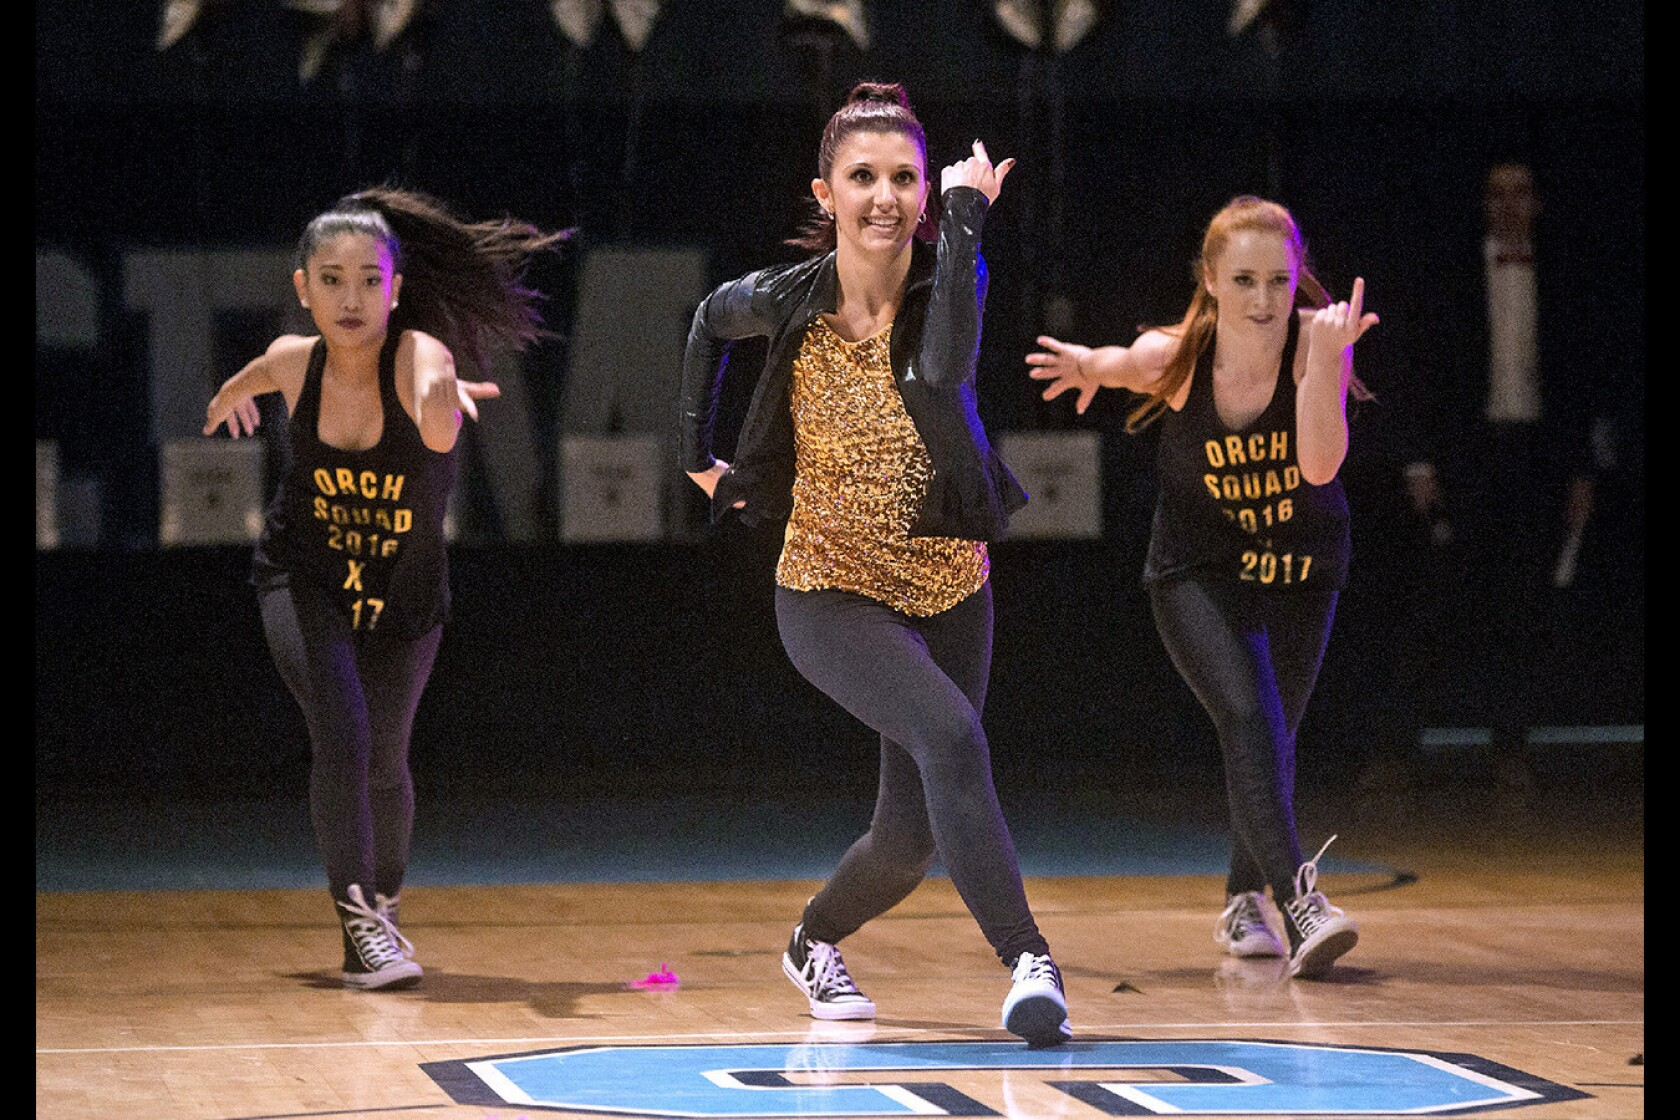 Teachers dance with students for fun and trophies at Corona